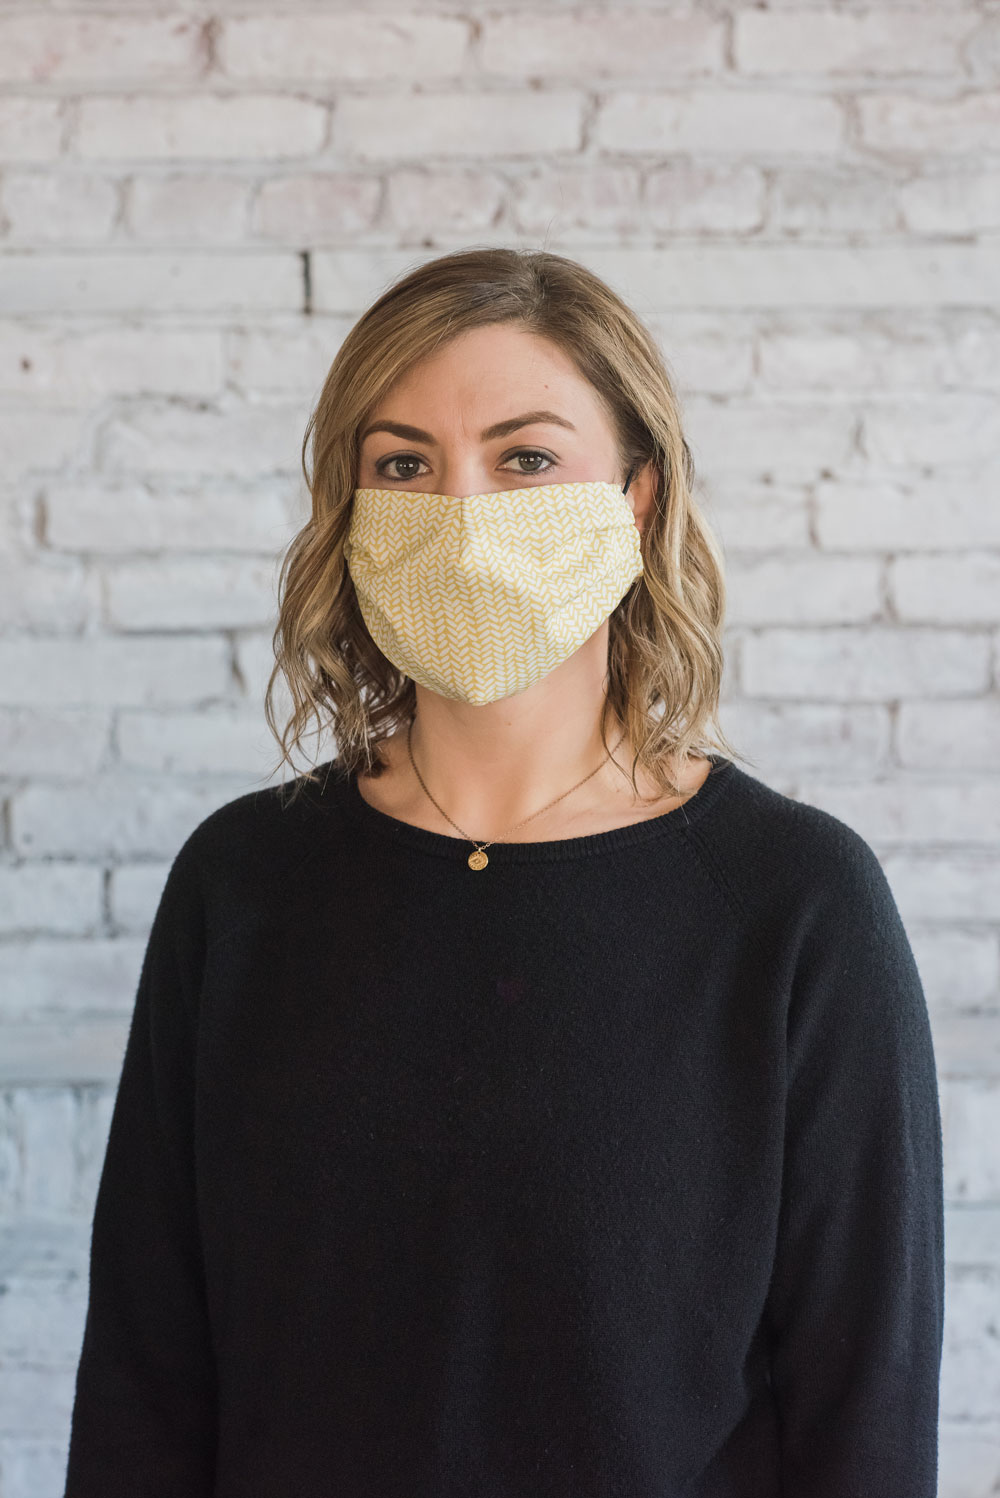 Our current global pandemic has created a shortage of medical masks. This free pattern with video explains how to sew a protective face mask with fabric. suzyquilts.com #facemaskpattern #sewfacemask